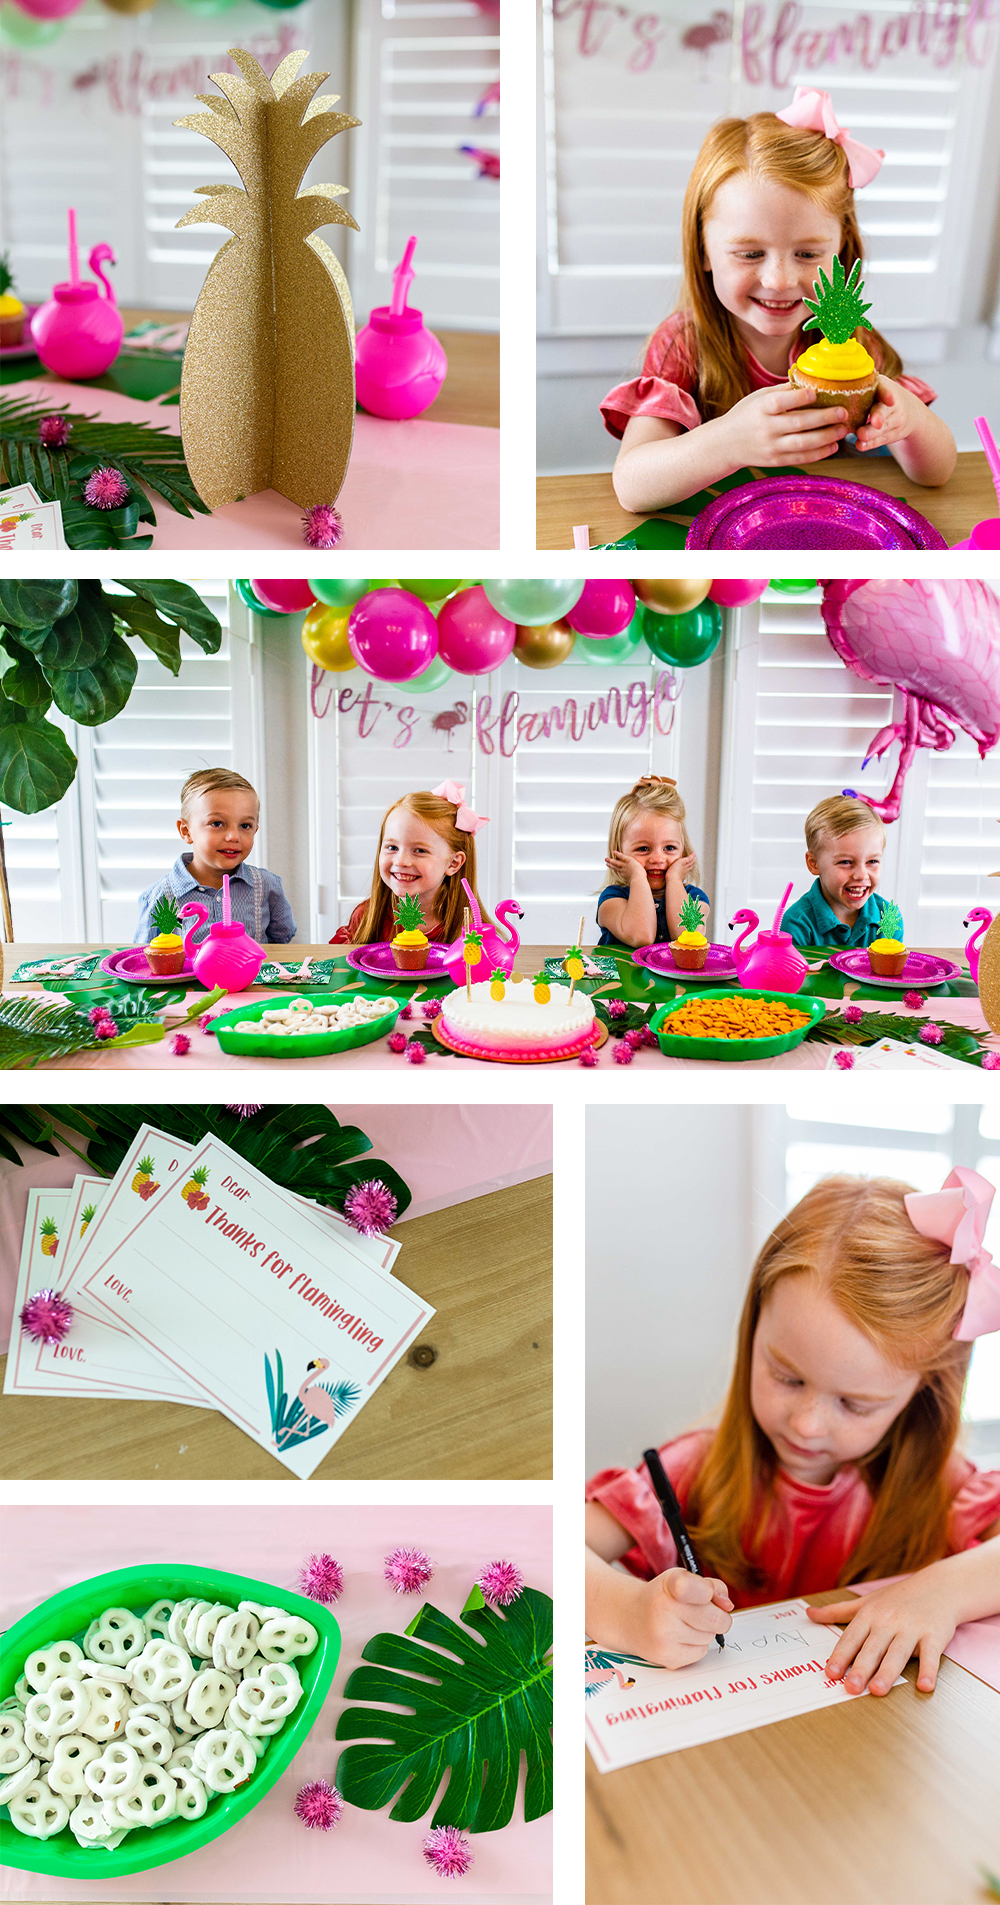 Children's tropical flamingo themed party lifestyle brand photography. Photo by Erin Reas based in Austin, TX